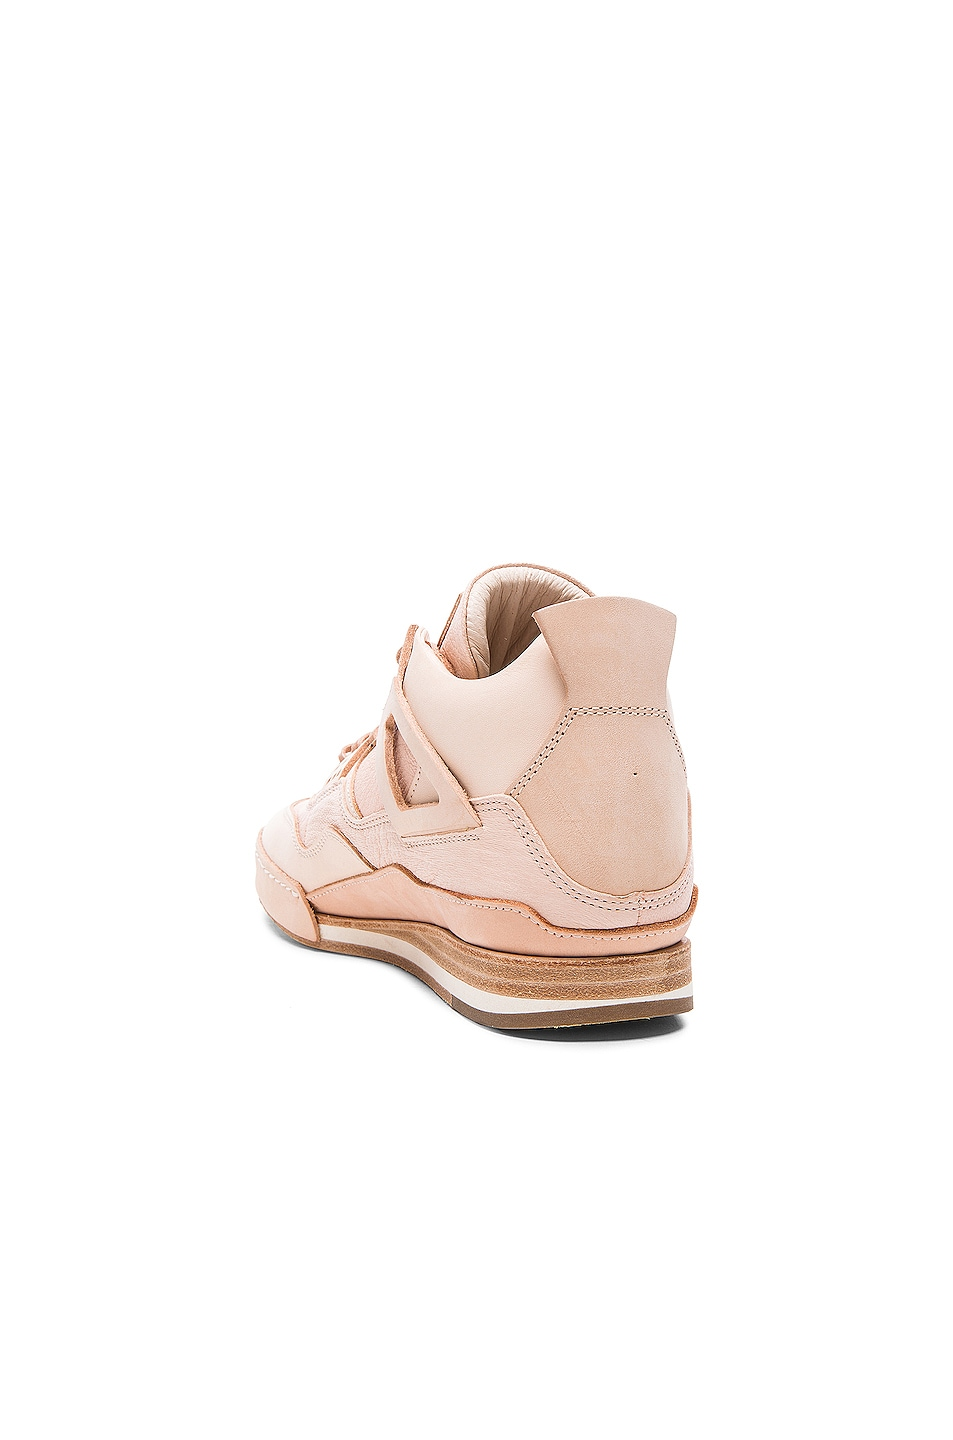 Image 3 of Hender Scheme Manual Industrial Product 10 in Natural